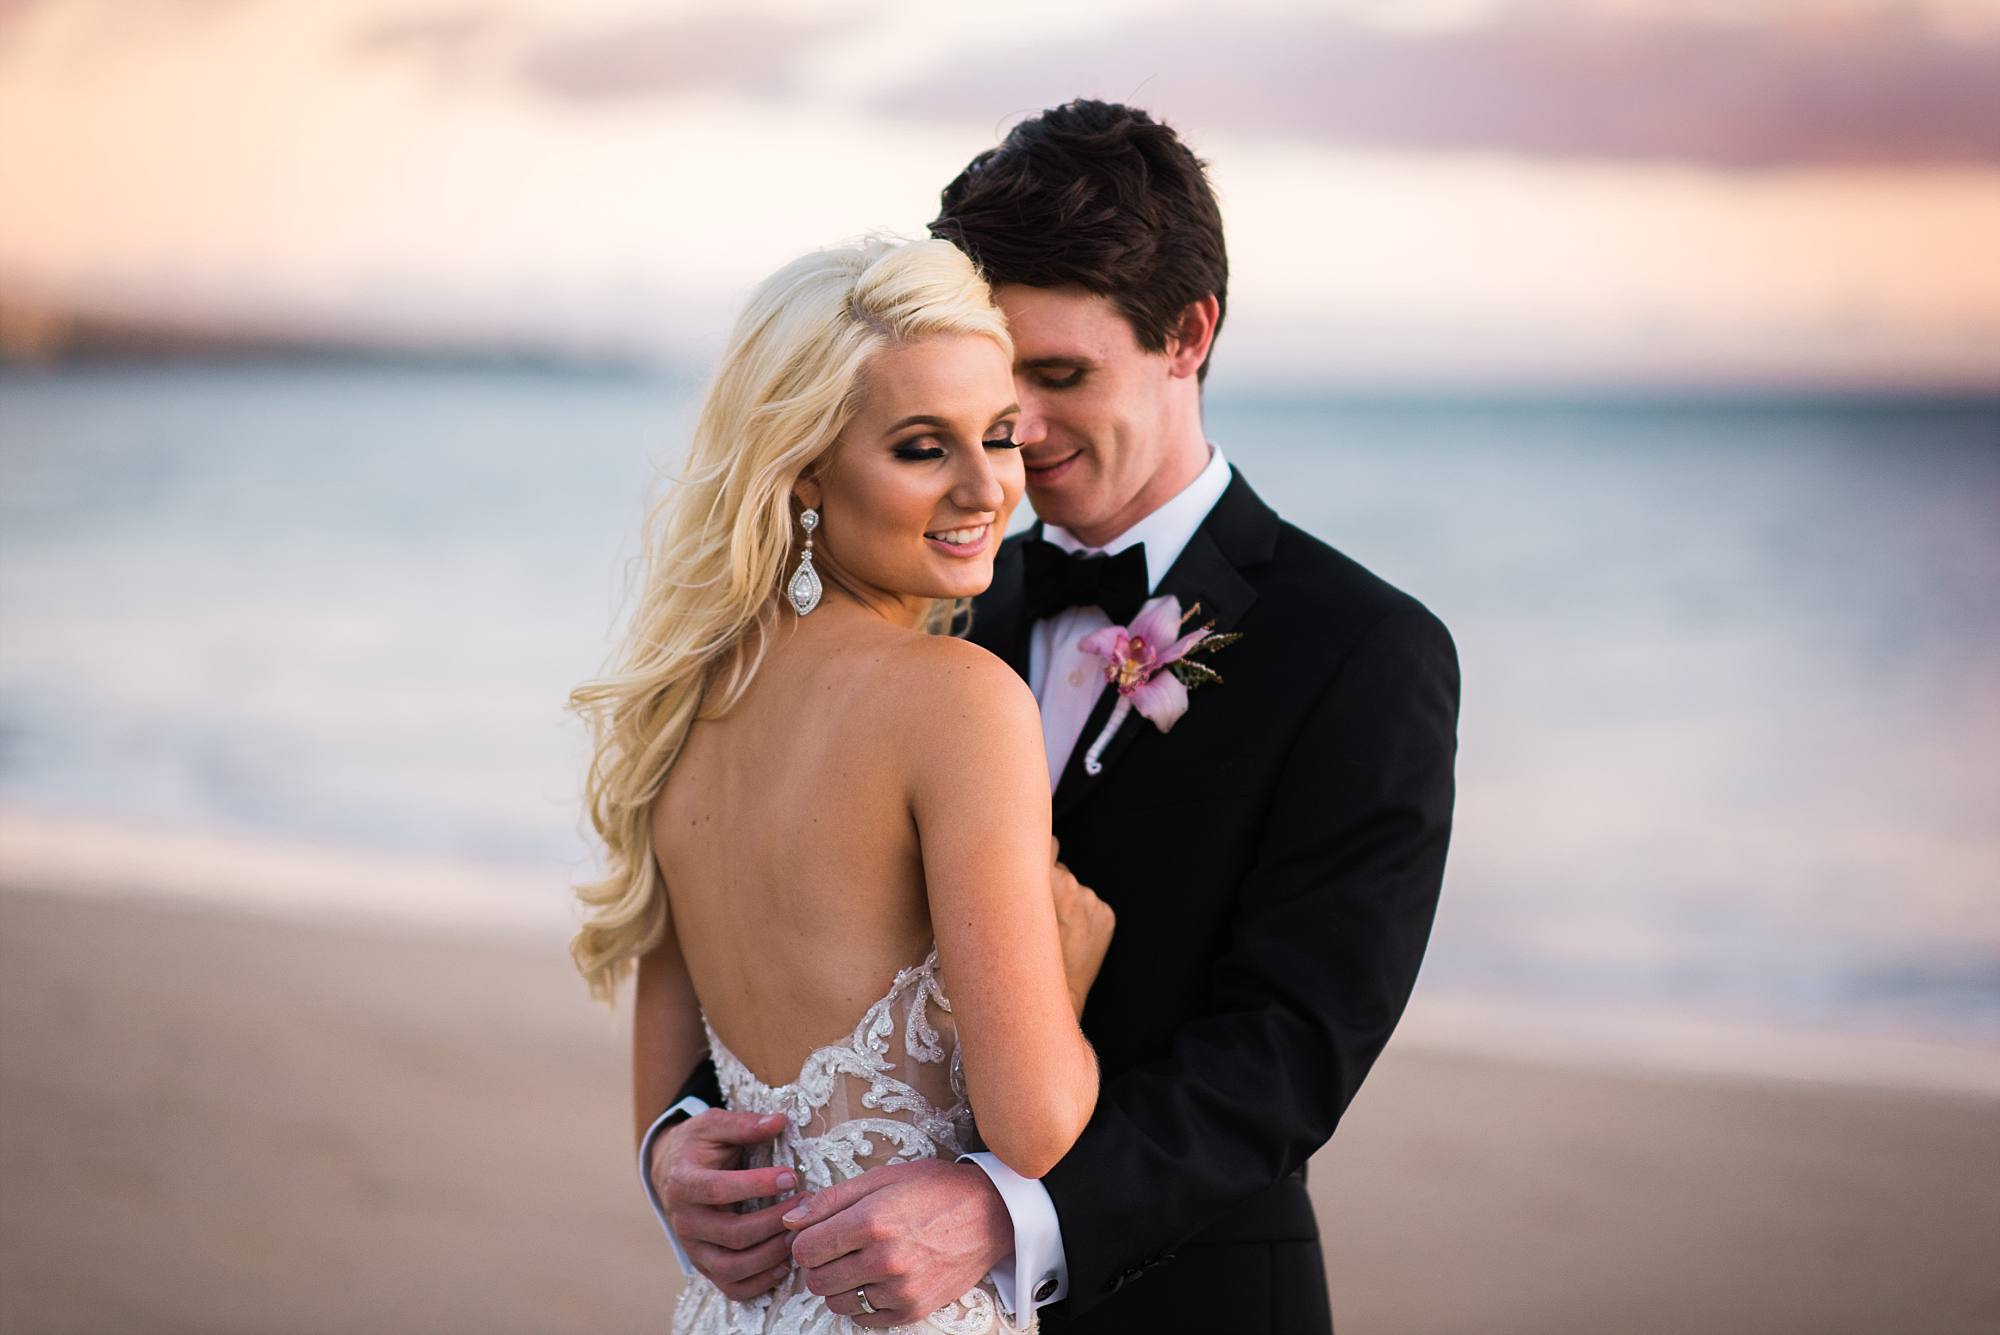 sweet bridal shot with wind in her hair, couple hugging, sand and water behind them